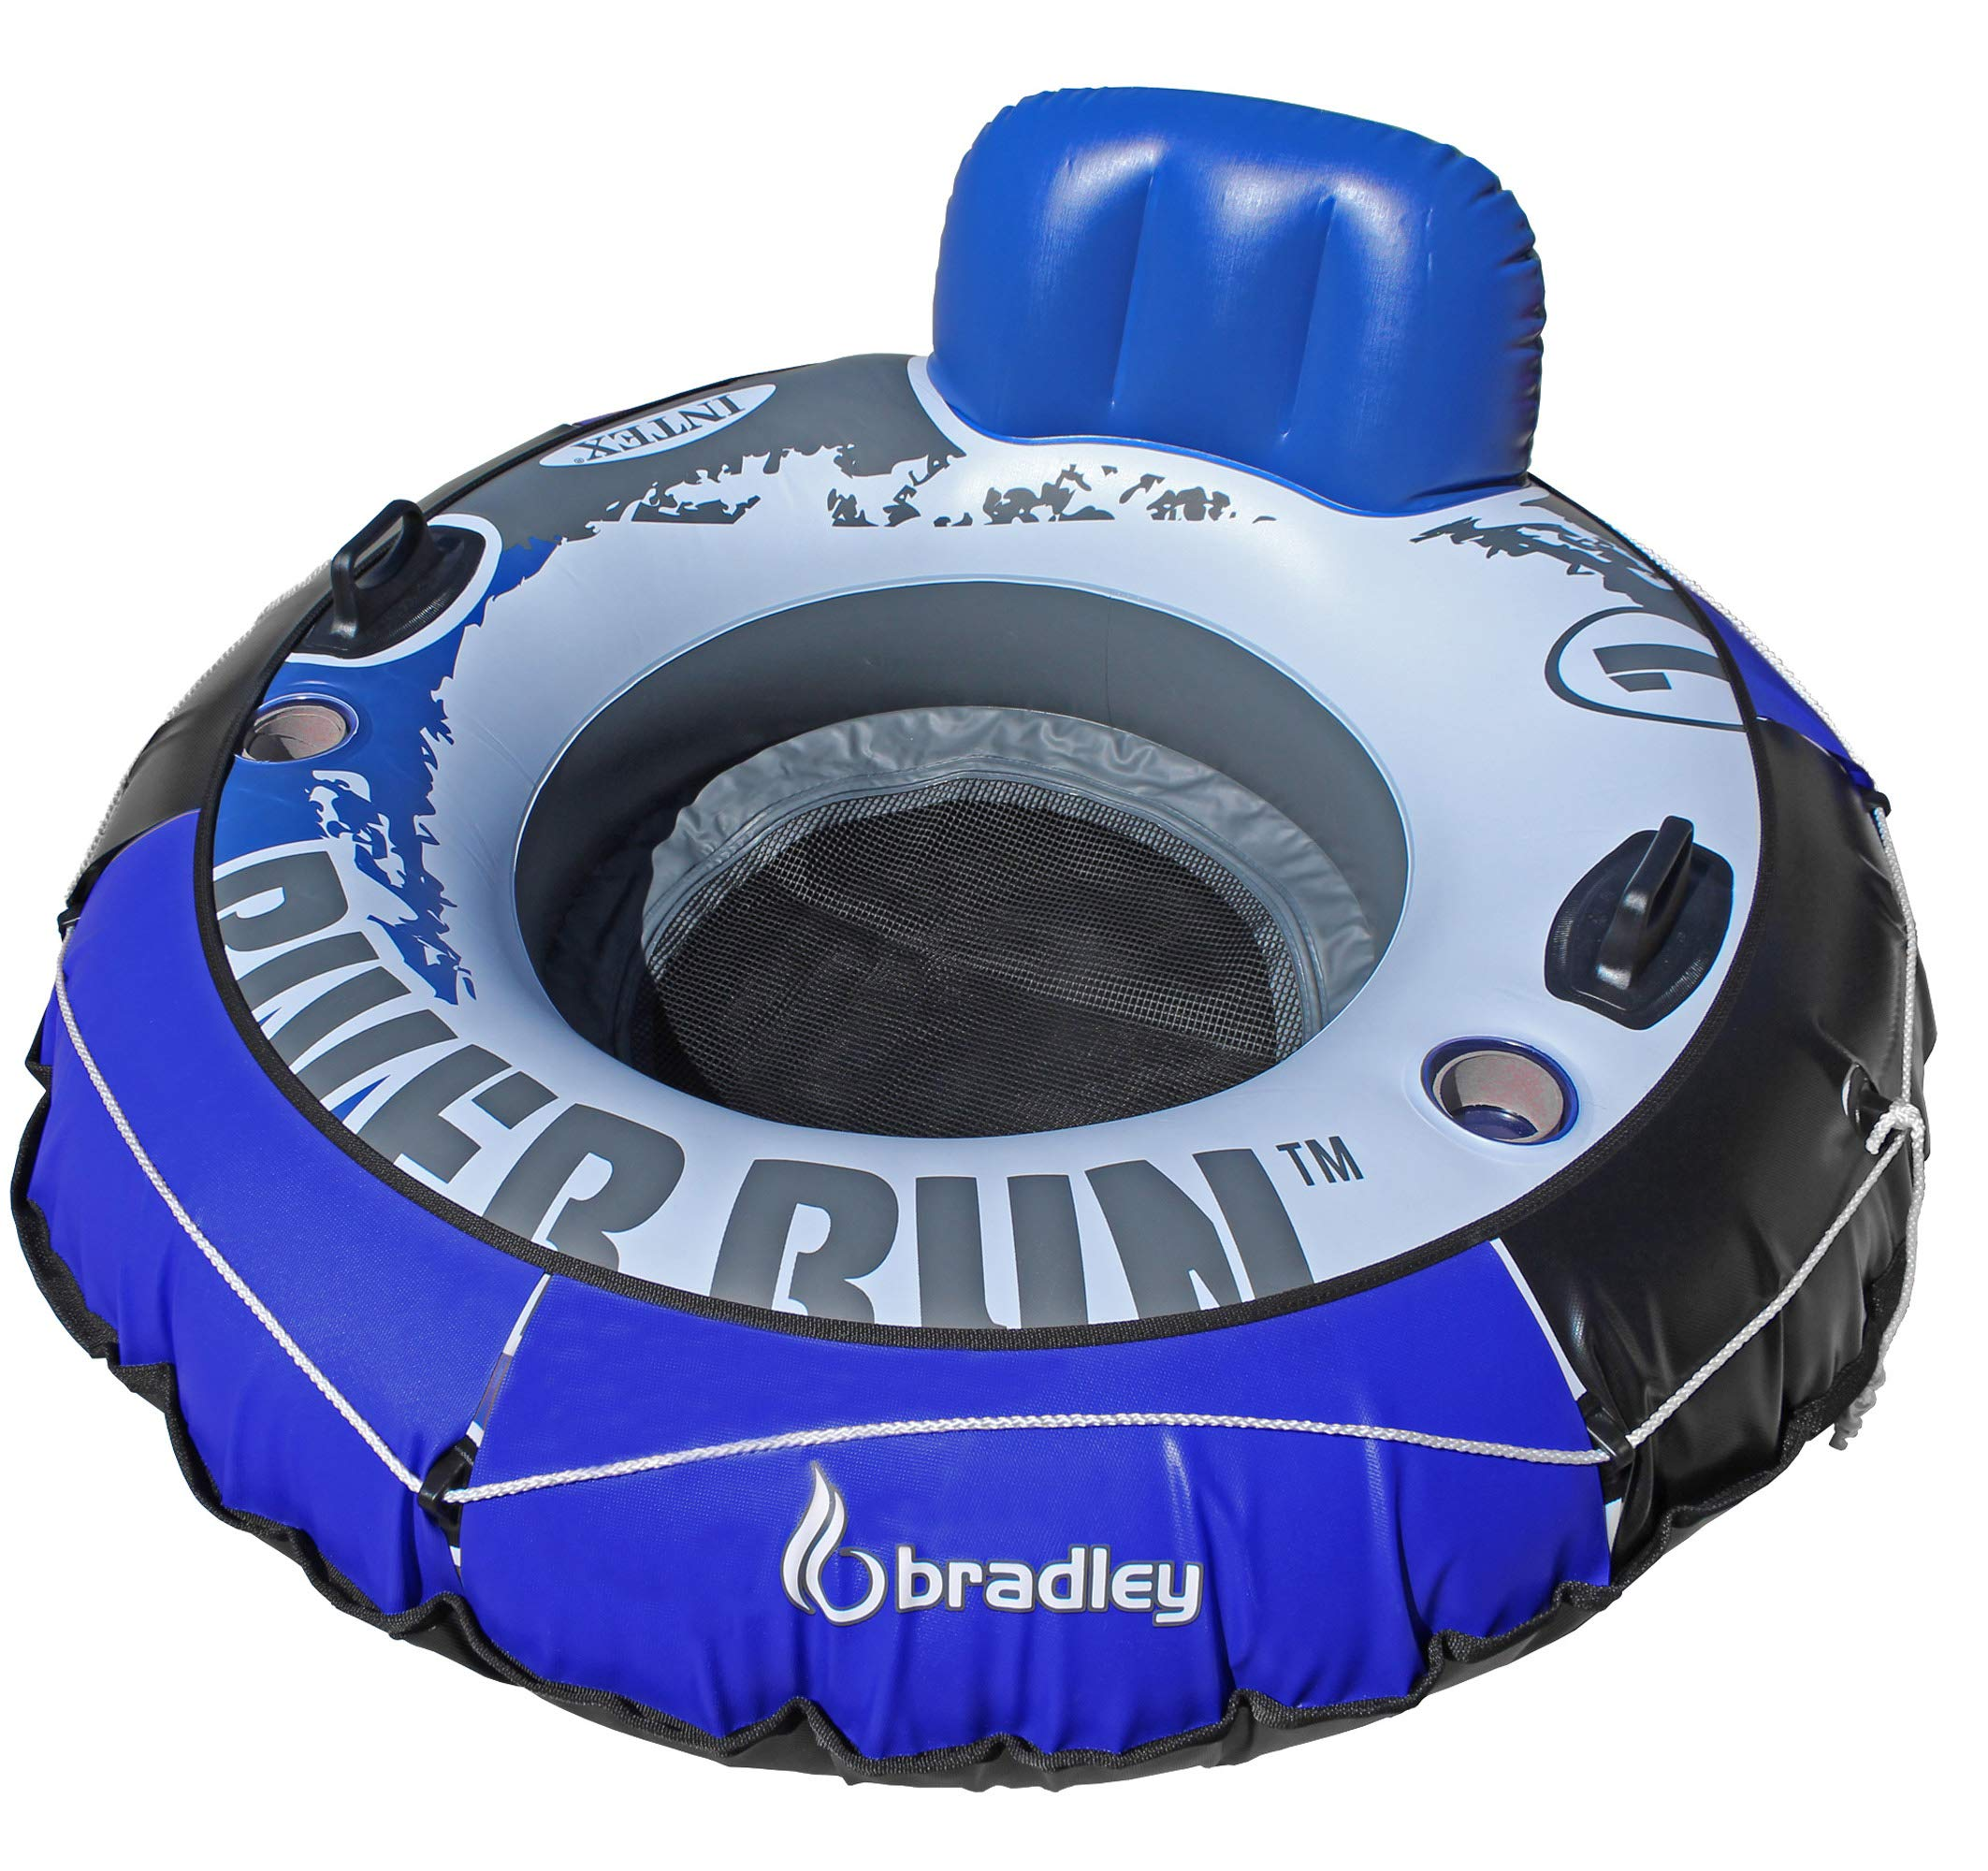 Intex Heavy Duty River Run Tube with Cover (4 Pack)   Floating Lounger   River Tube by Intex (Image #2)